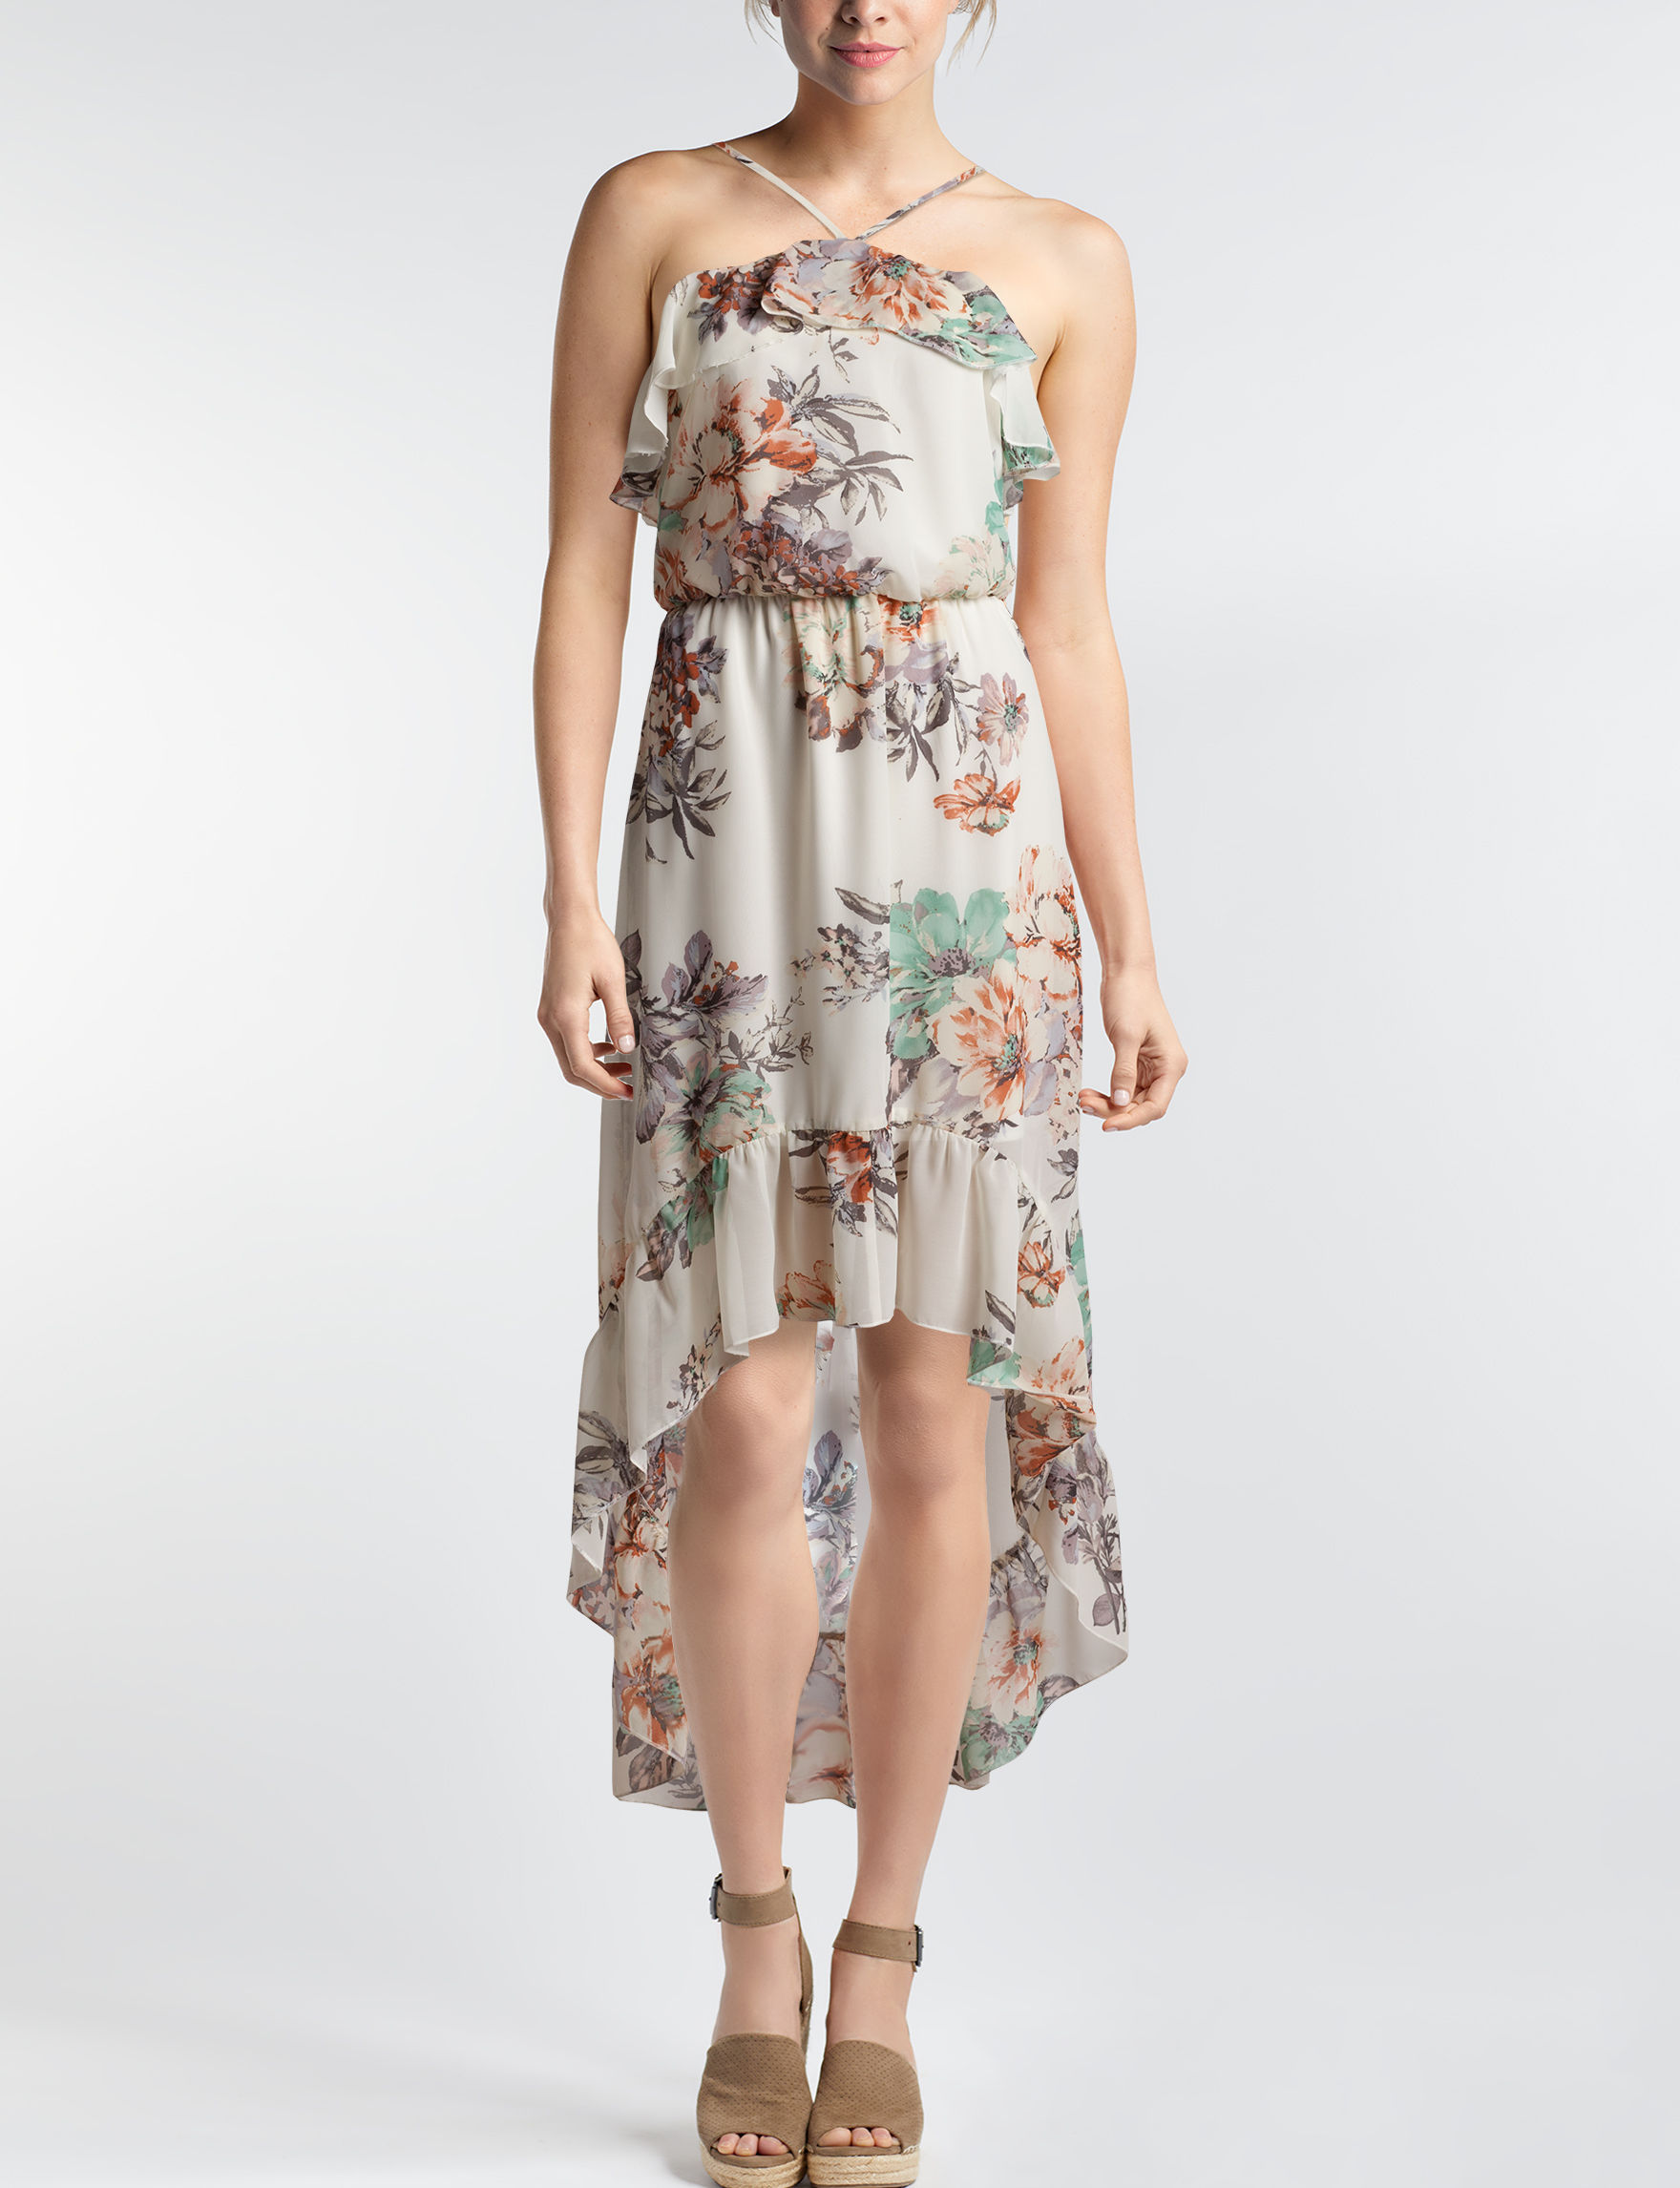 Bailey Blue Ivory Floral Everyday & Casual Sundresses